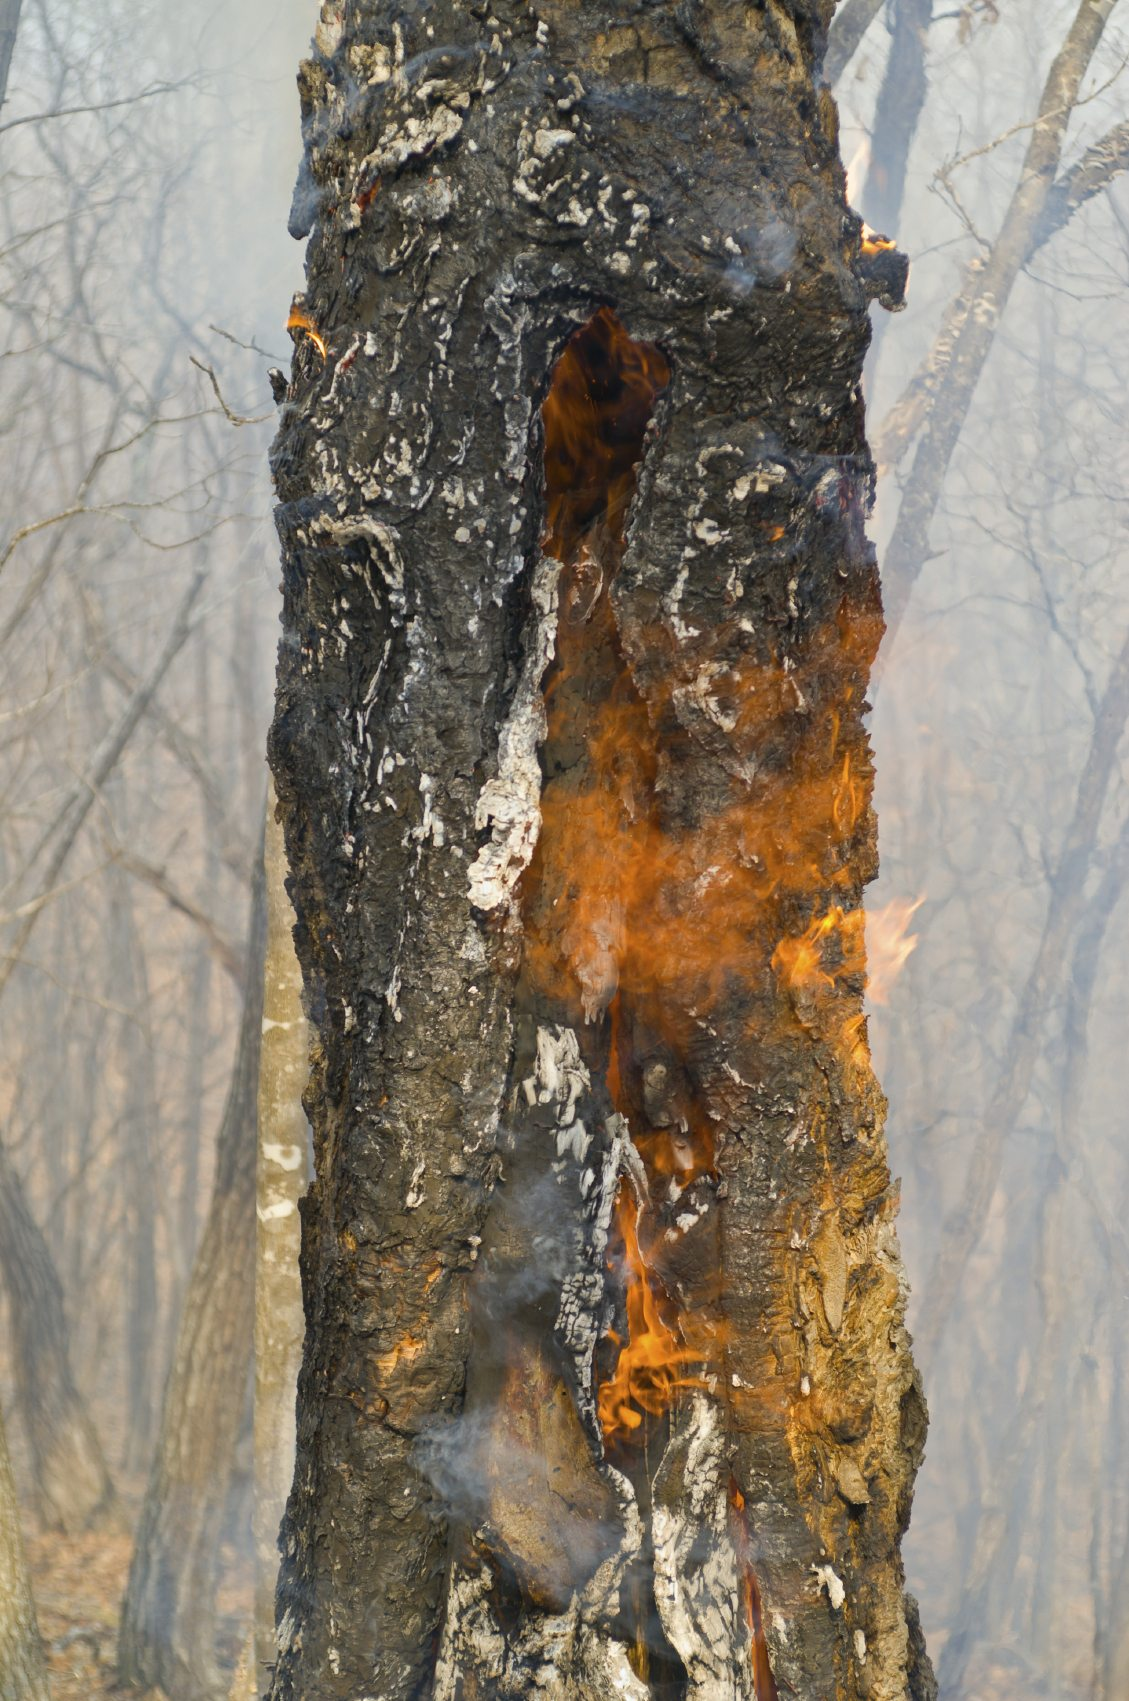 Helping Fire Damaged Trees - How To Save Trees Damaged By Fire